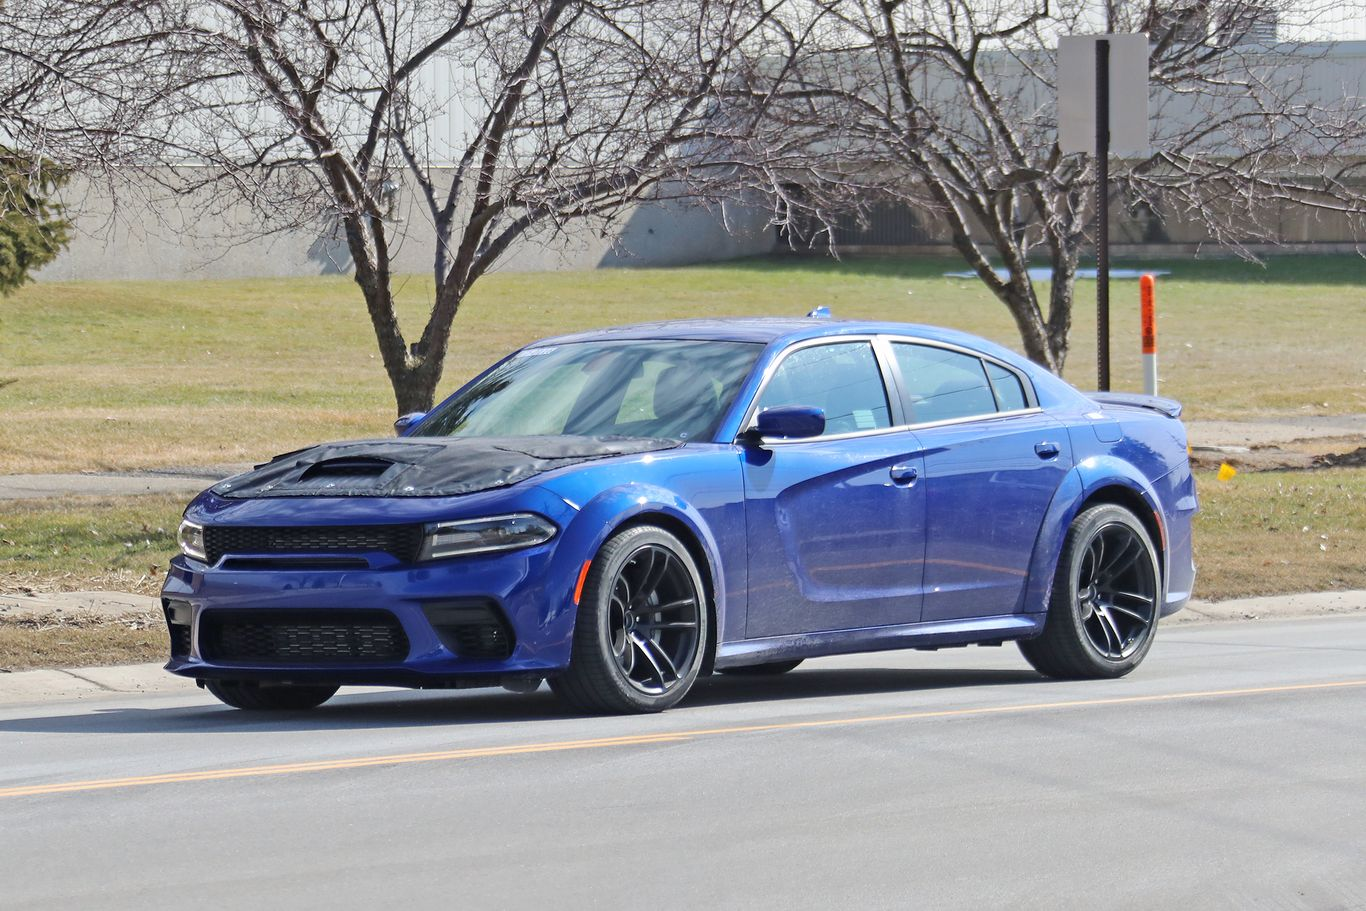 dodge hellcat redeye near me This Is The Near-800bhp Dodge Charger Hellcat Redeye Widebody